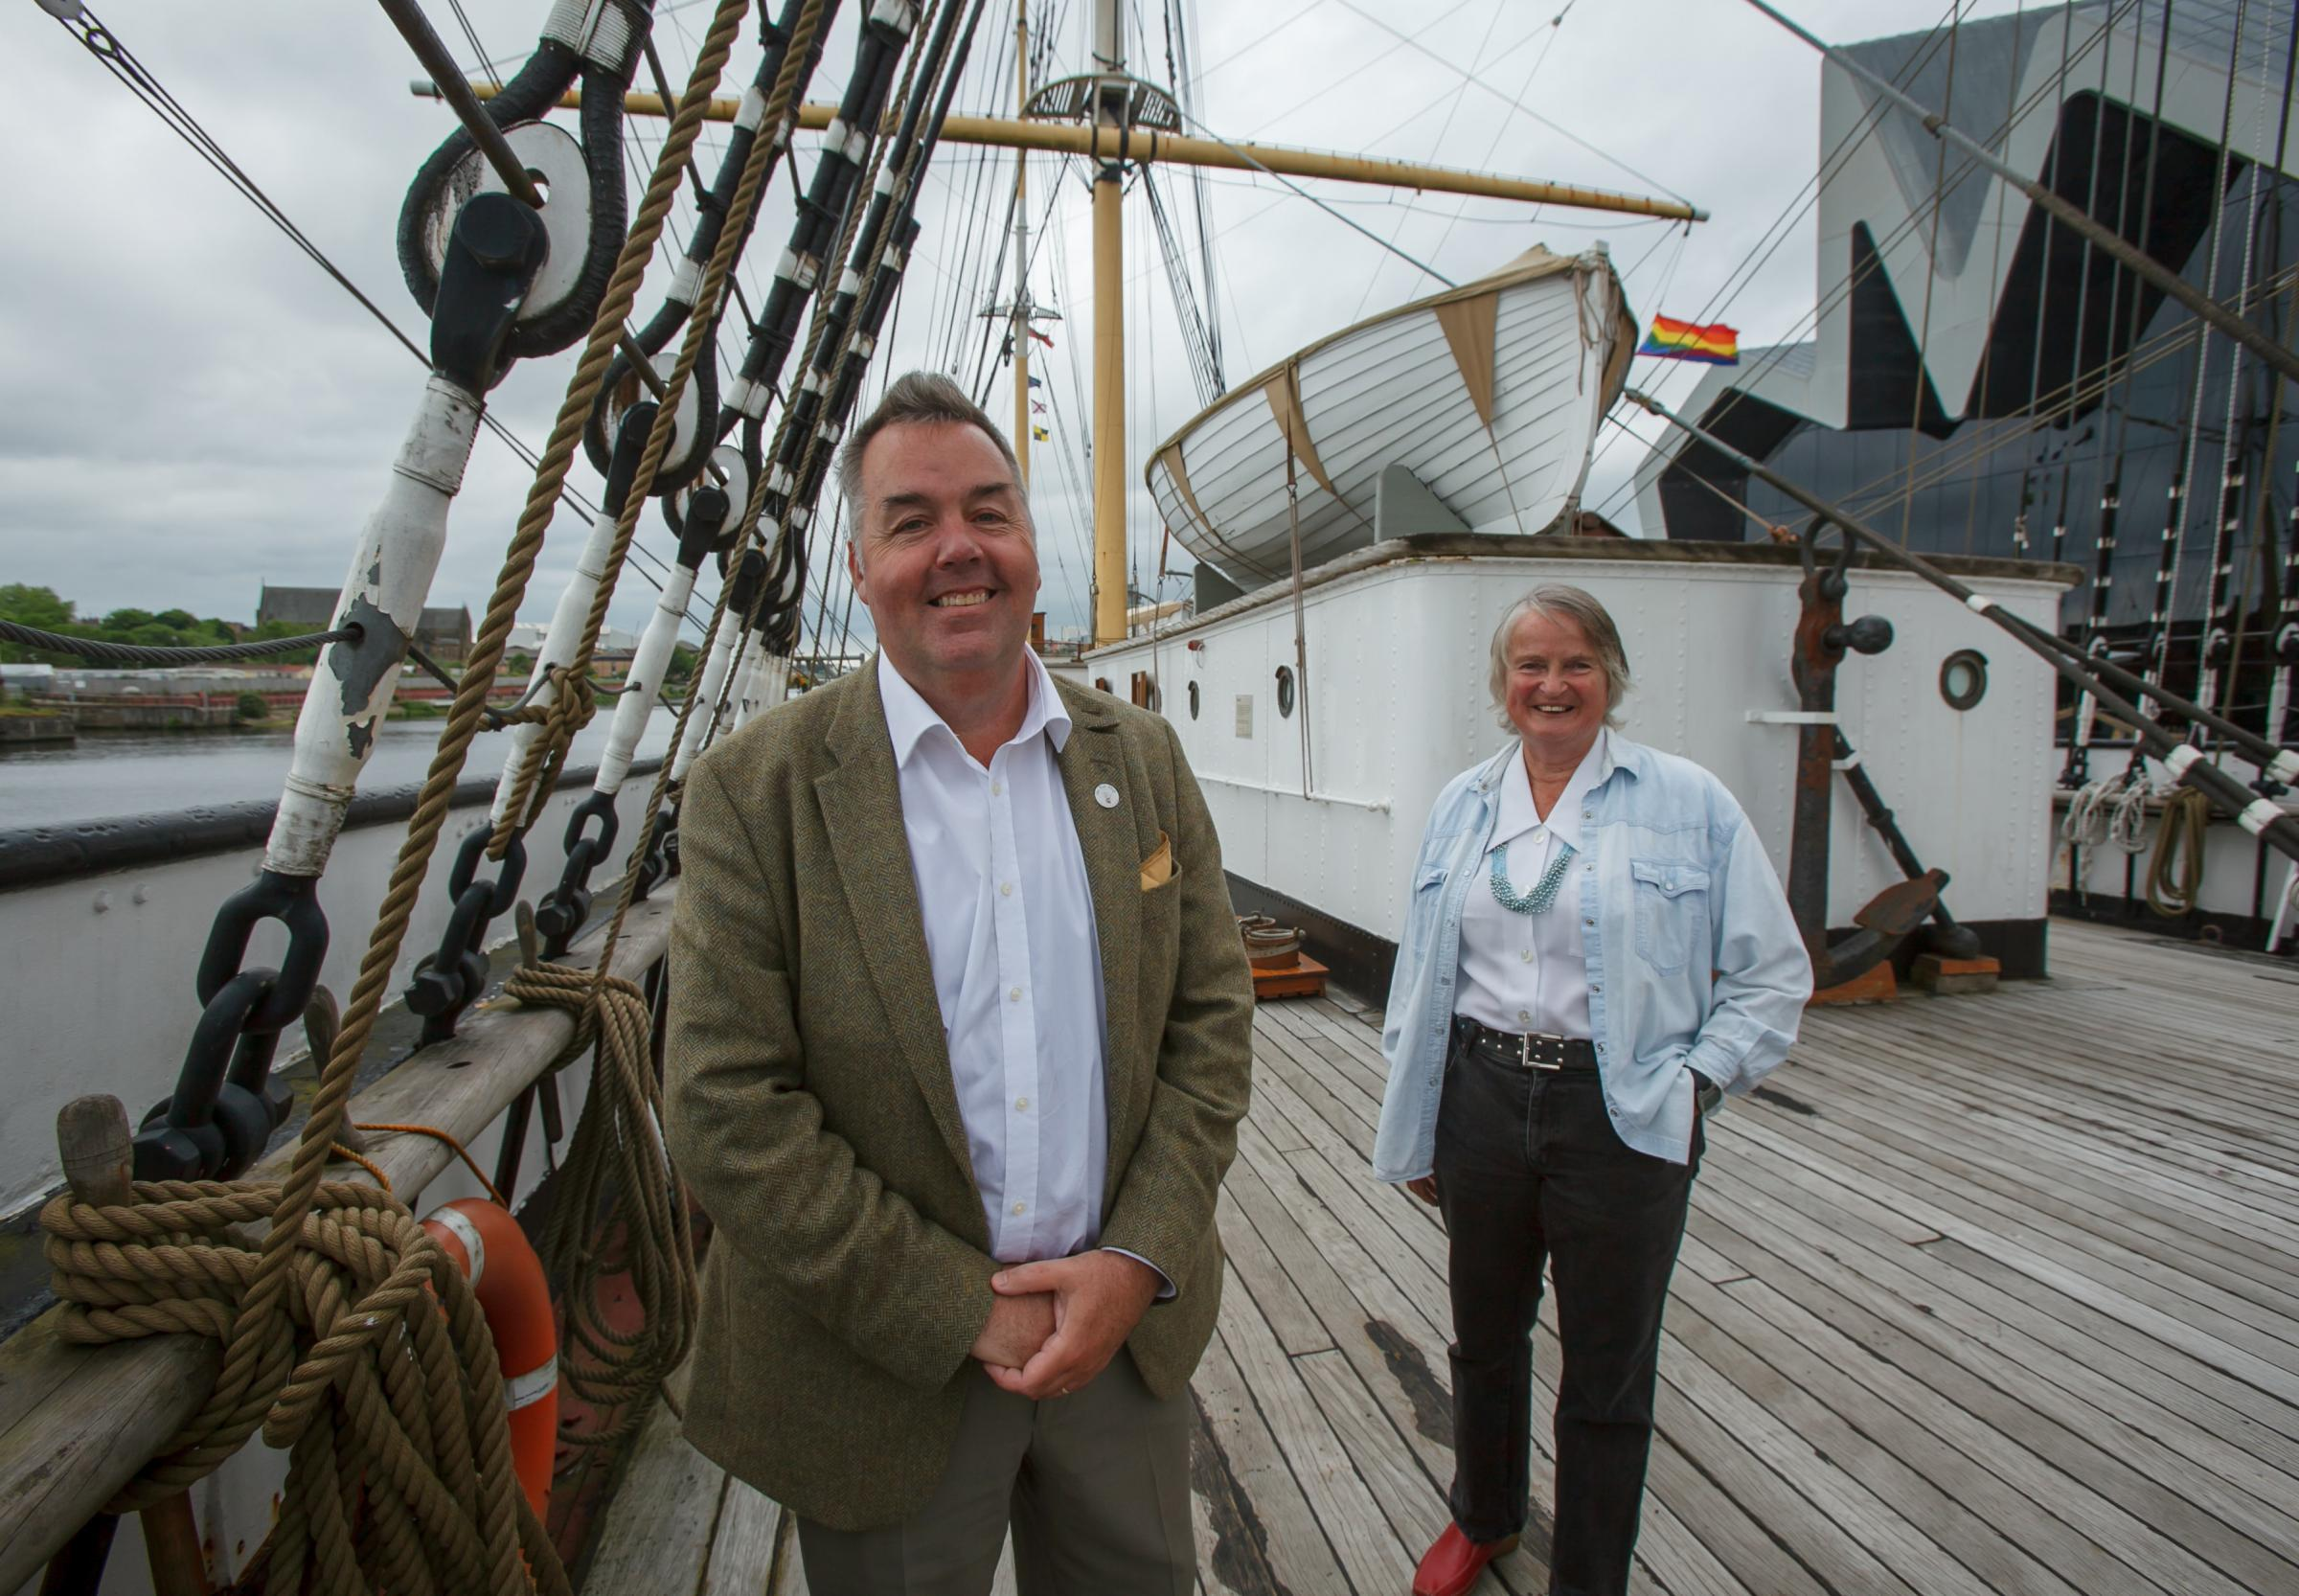 Glasgow's tall ship Glenlee in battle to secure future as she marks 125th year